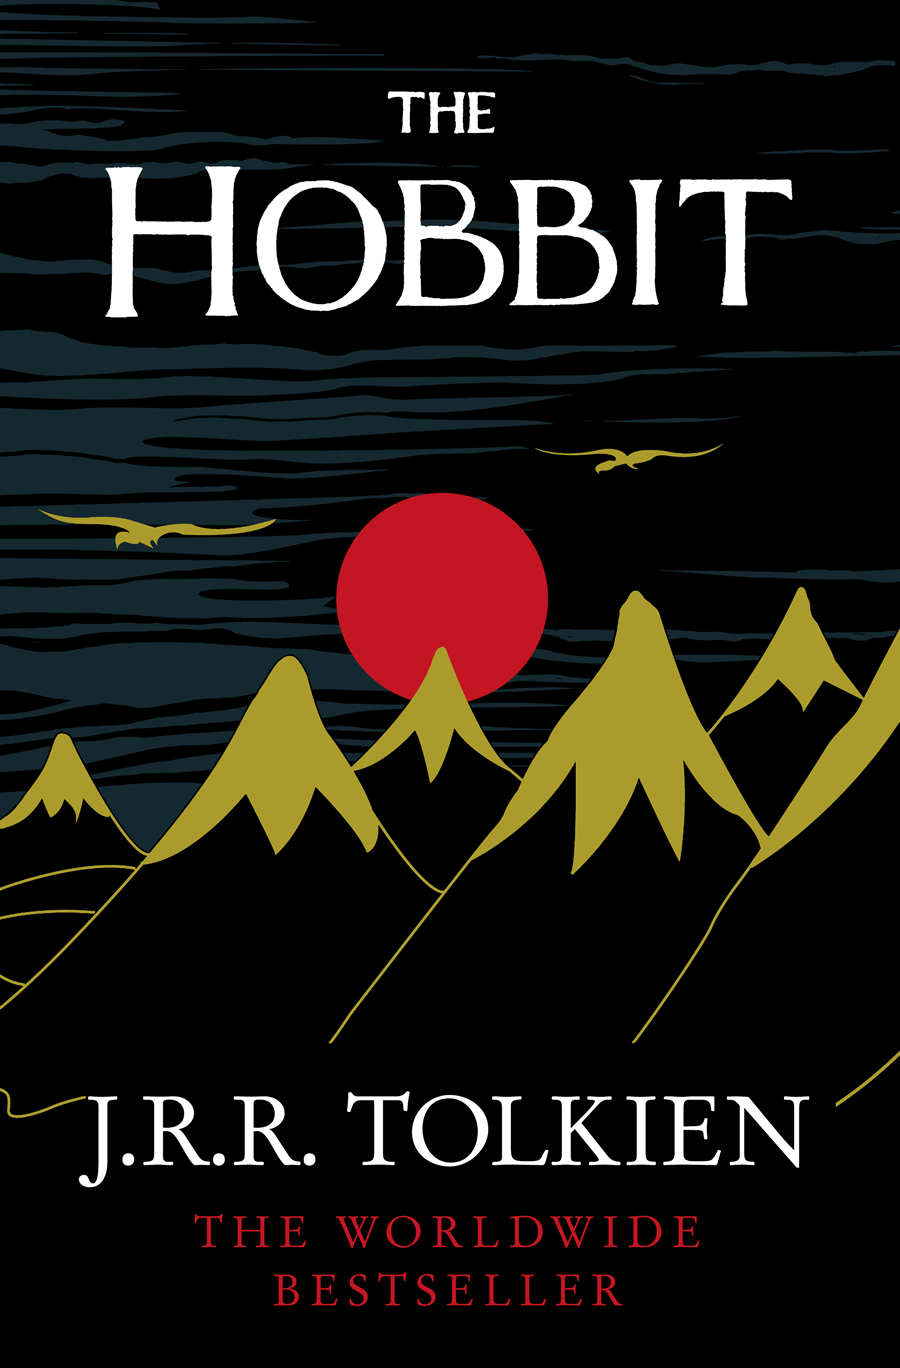 Sorry, J.R.R. Tolkien is not the father of fantasy